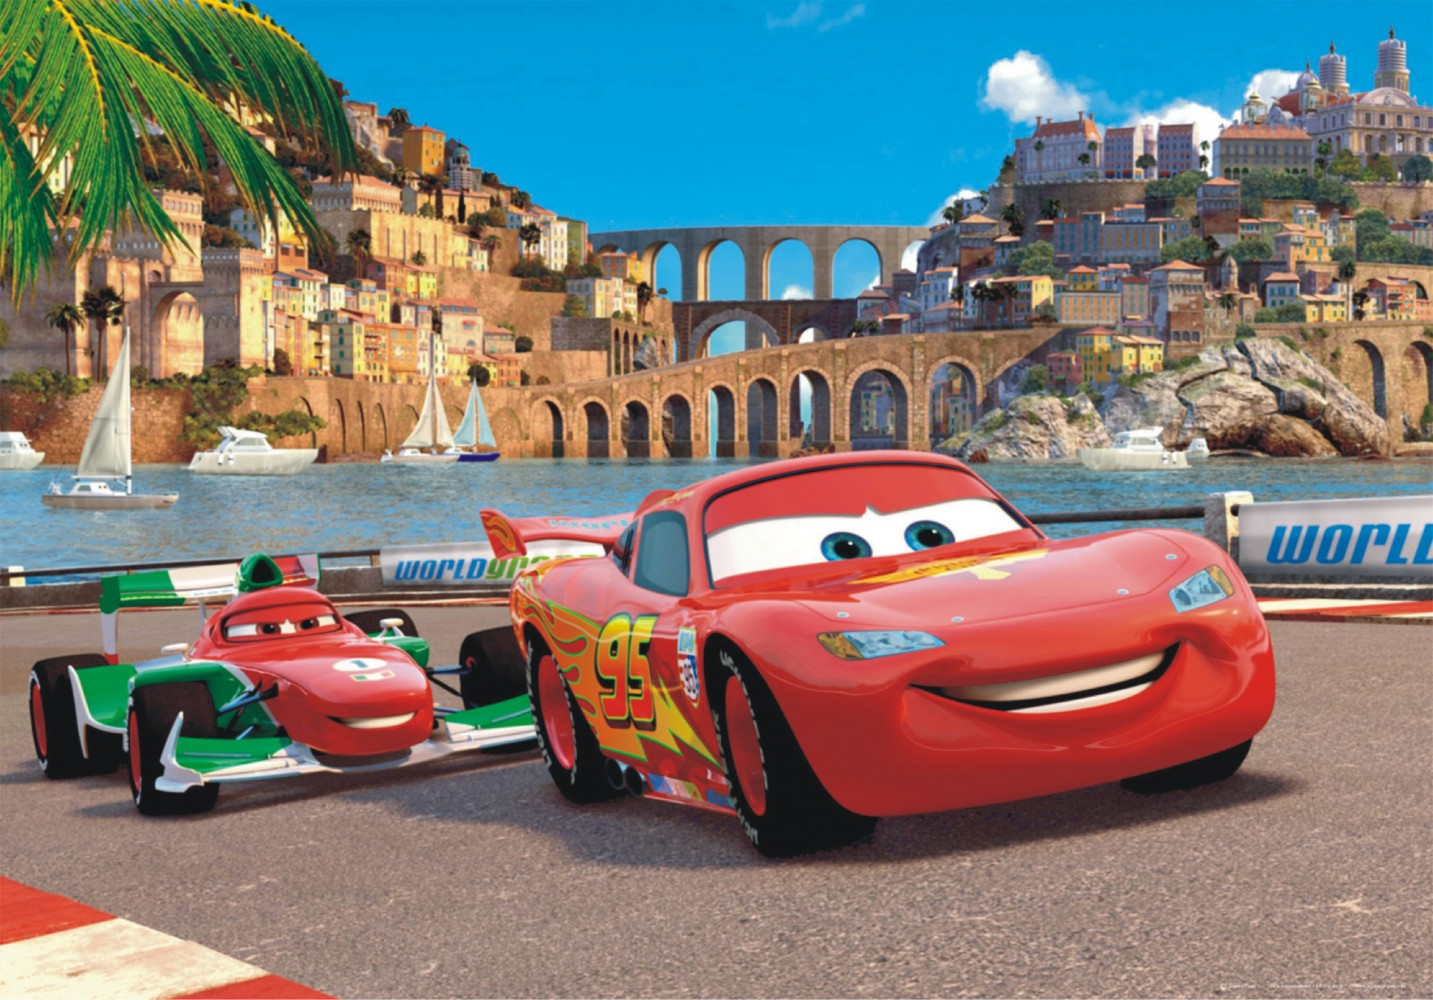 Xxl poster wall mural wallpaper disney cars 2 mcqueen - Disney cars wallpaper ...